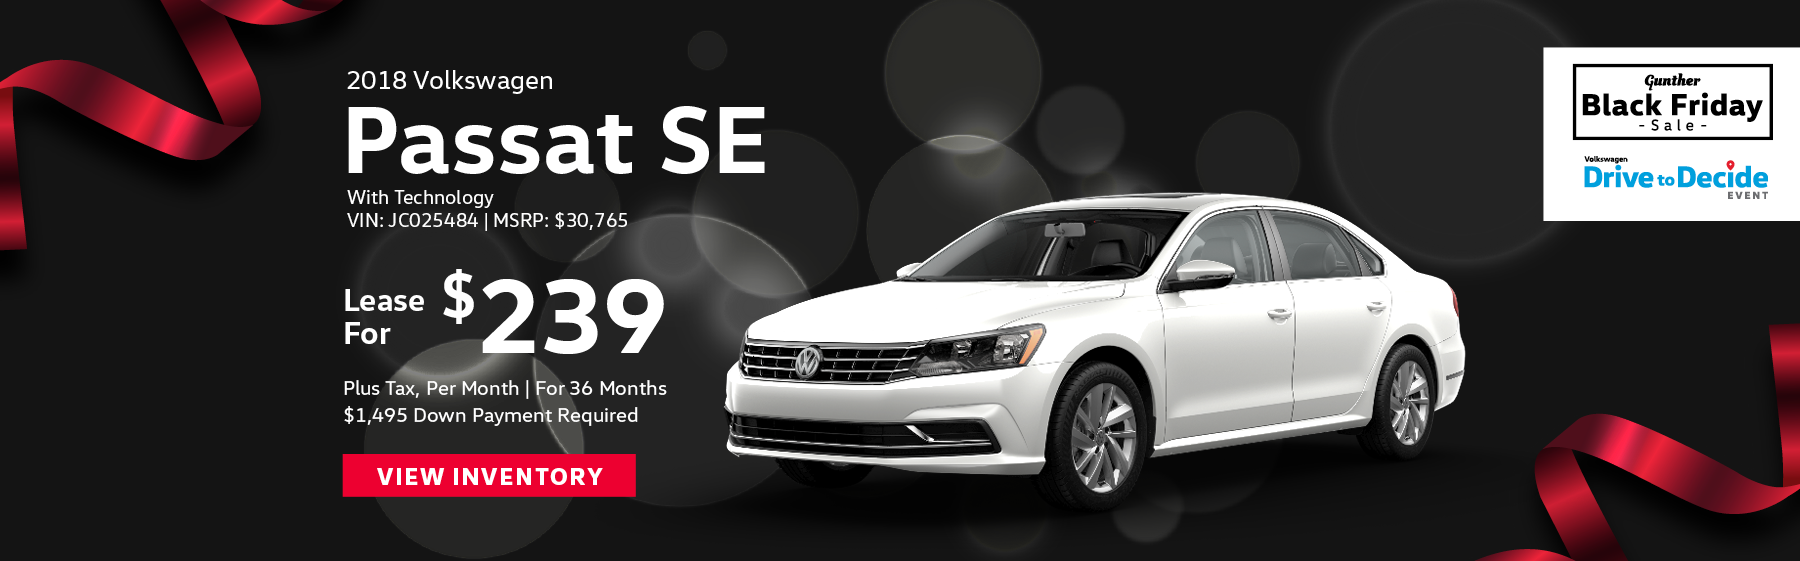 Lease the 2018 Volkswagen Passat SE for $239 plus tax for 36 months. $1,495 Down payment required.